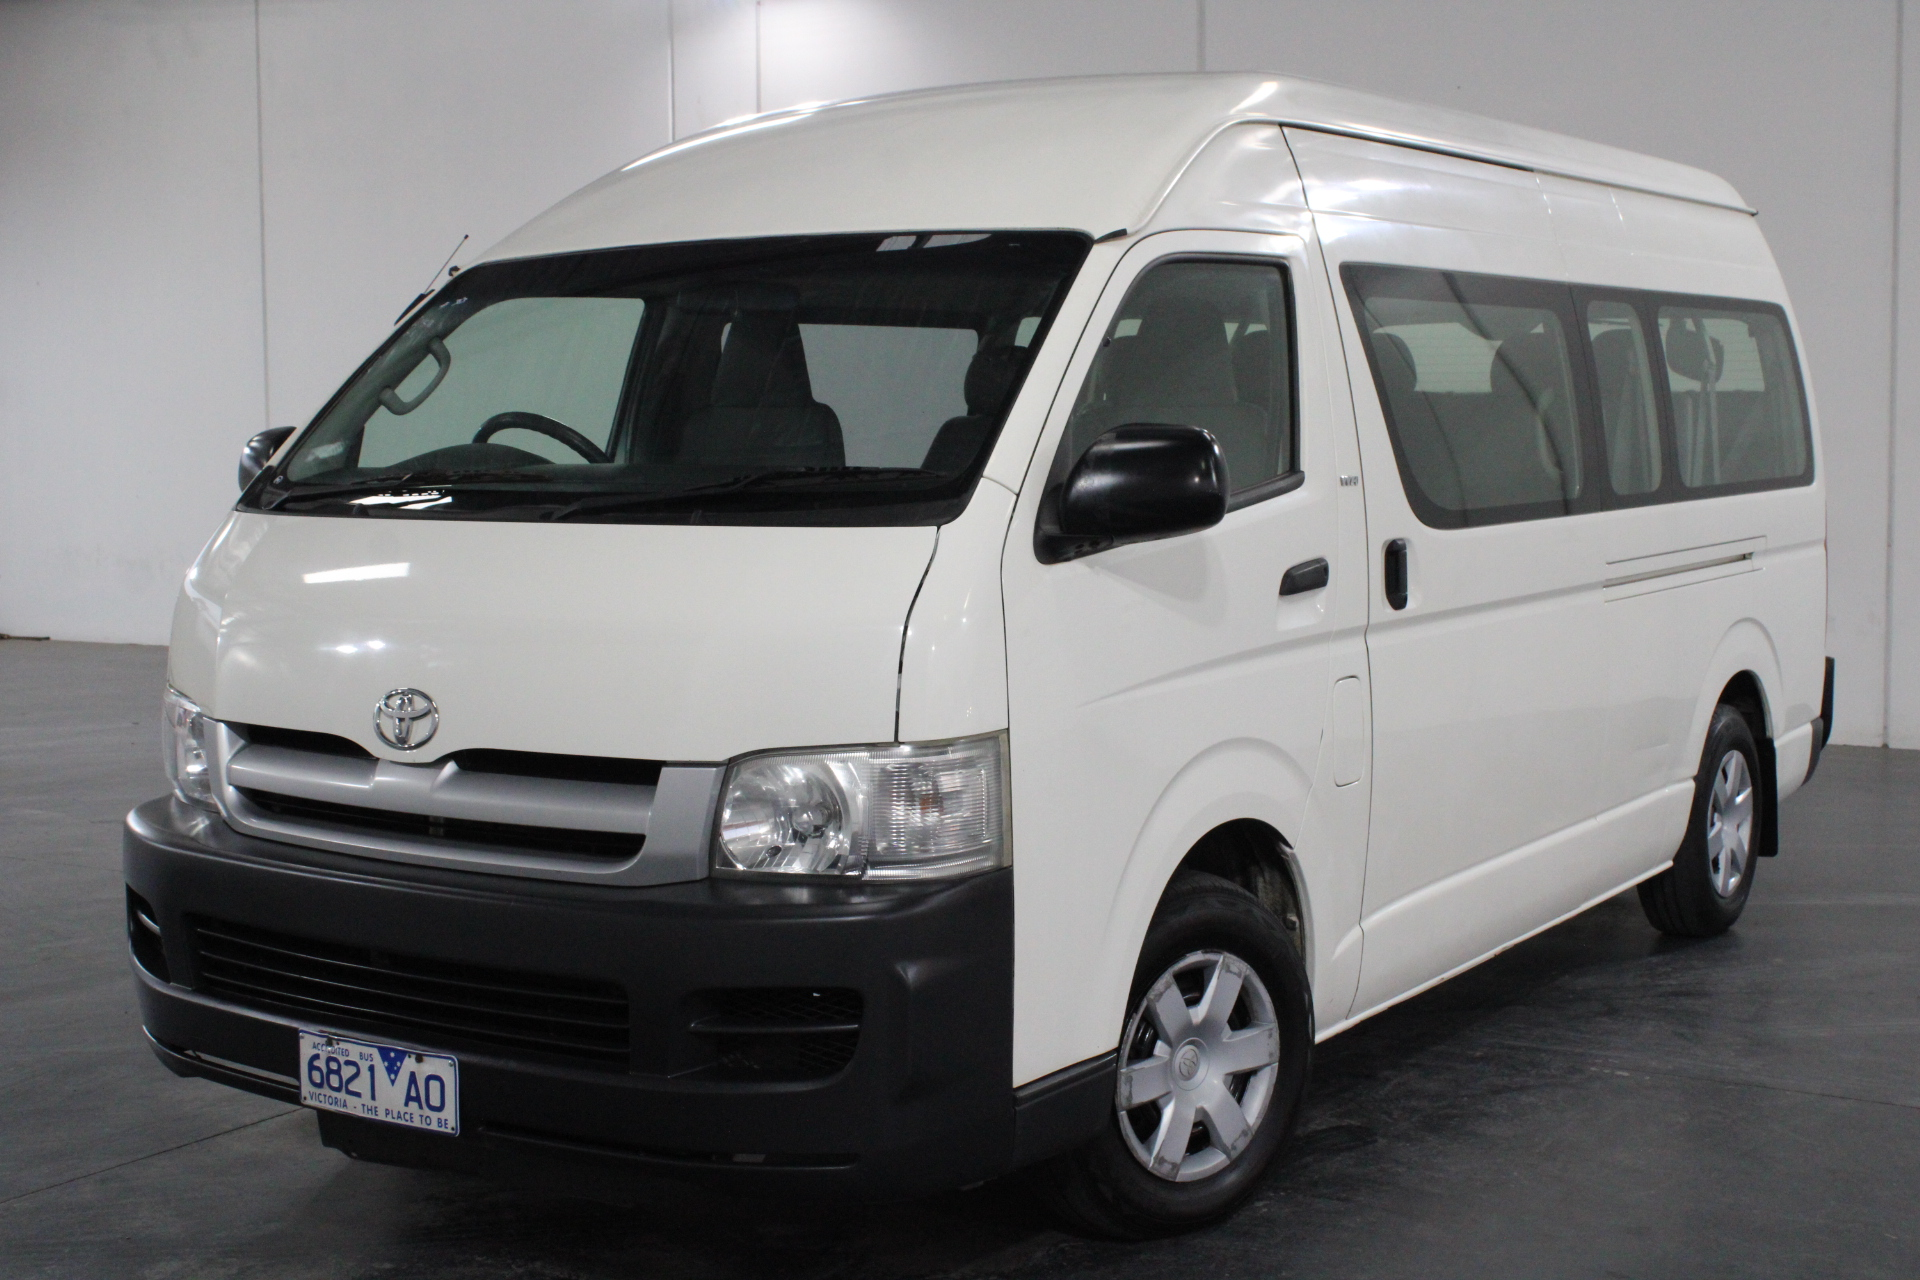 2005 Toyota Hiace Commuter TRH223R Automatic 14 Seats Bus